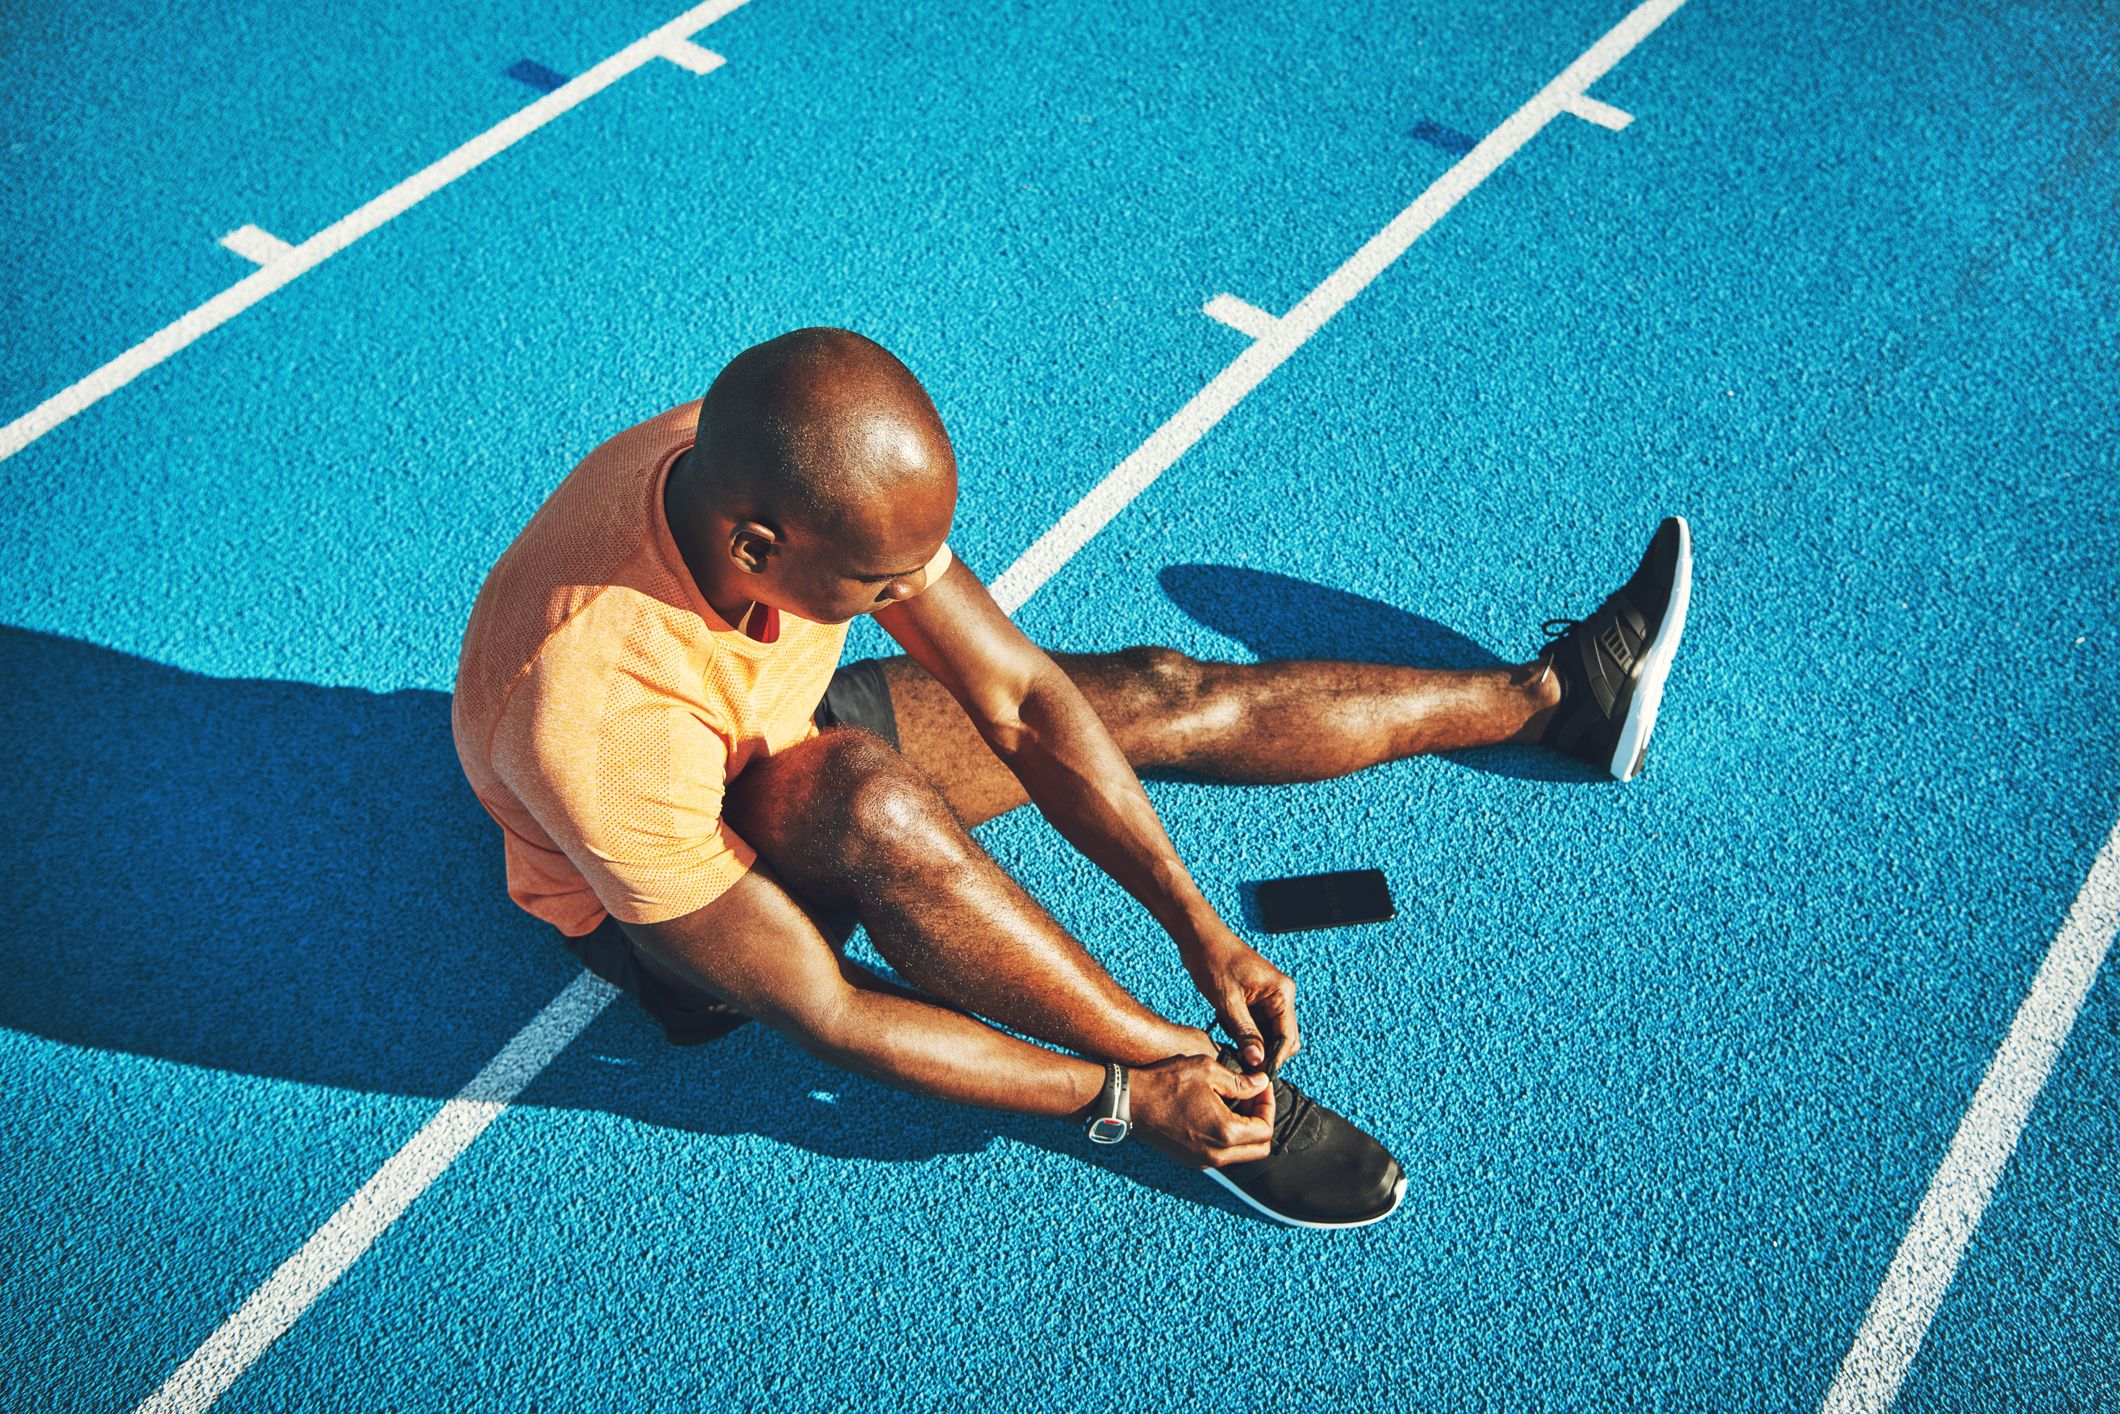 young-athlete-tying-up-his-shoes-on-a-running-track-royalty-free-image-911667868-1535048466